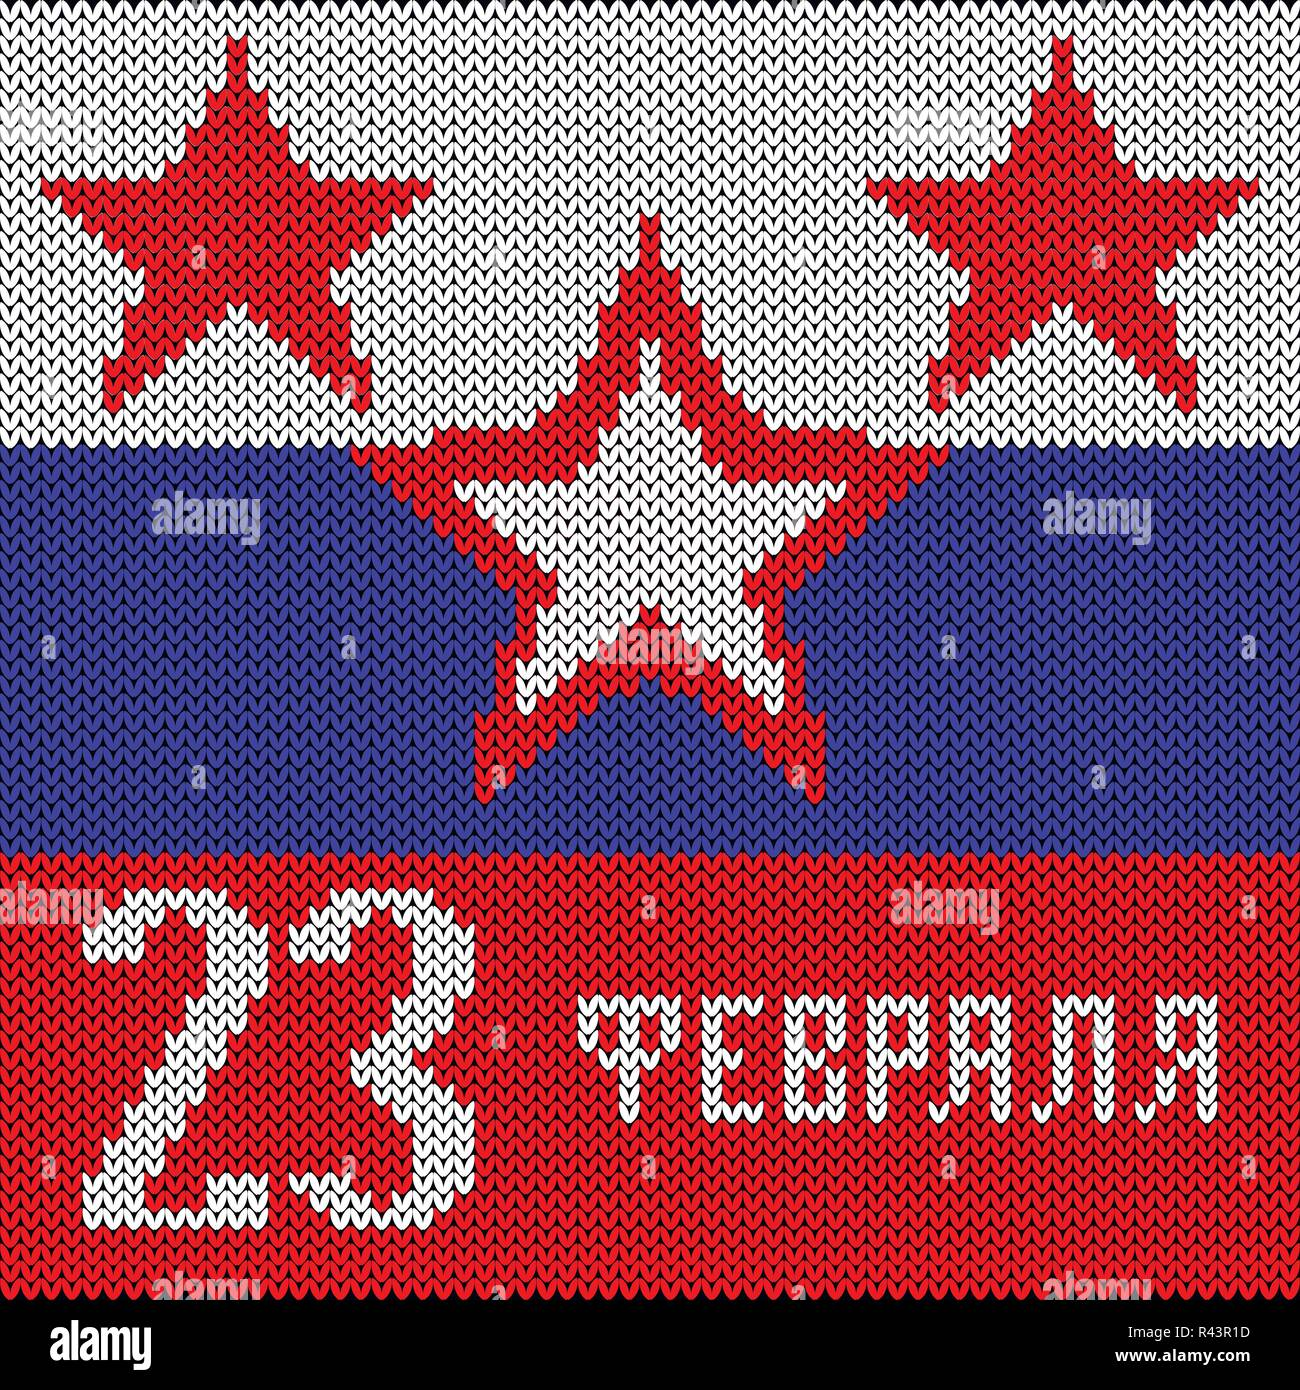 Defender of the Fatherland Day. February 23 - text in Russian. Colors of the Russian flag, red five-pointed stars. Imitation knitted fabric. Banner, i - Stock Vector